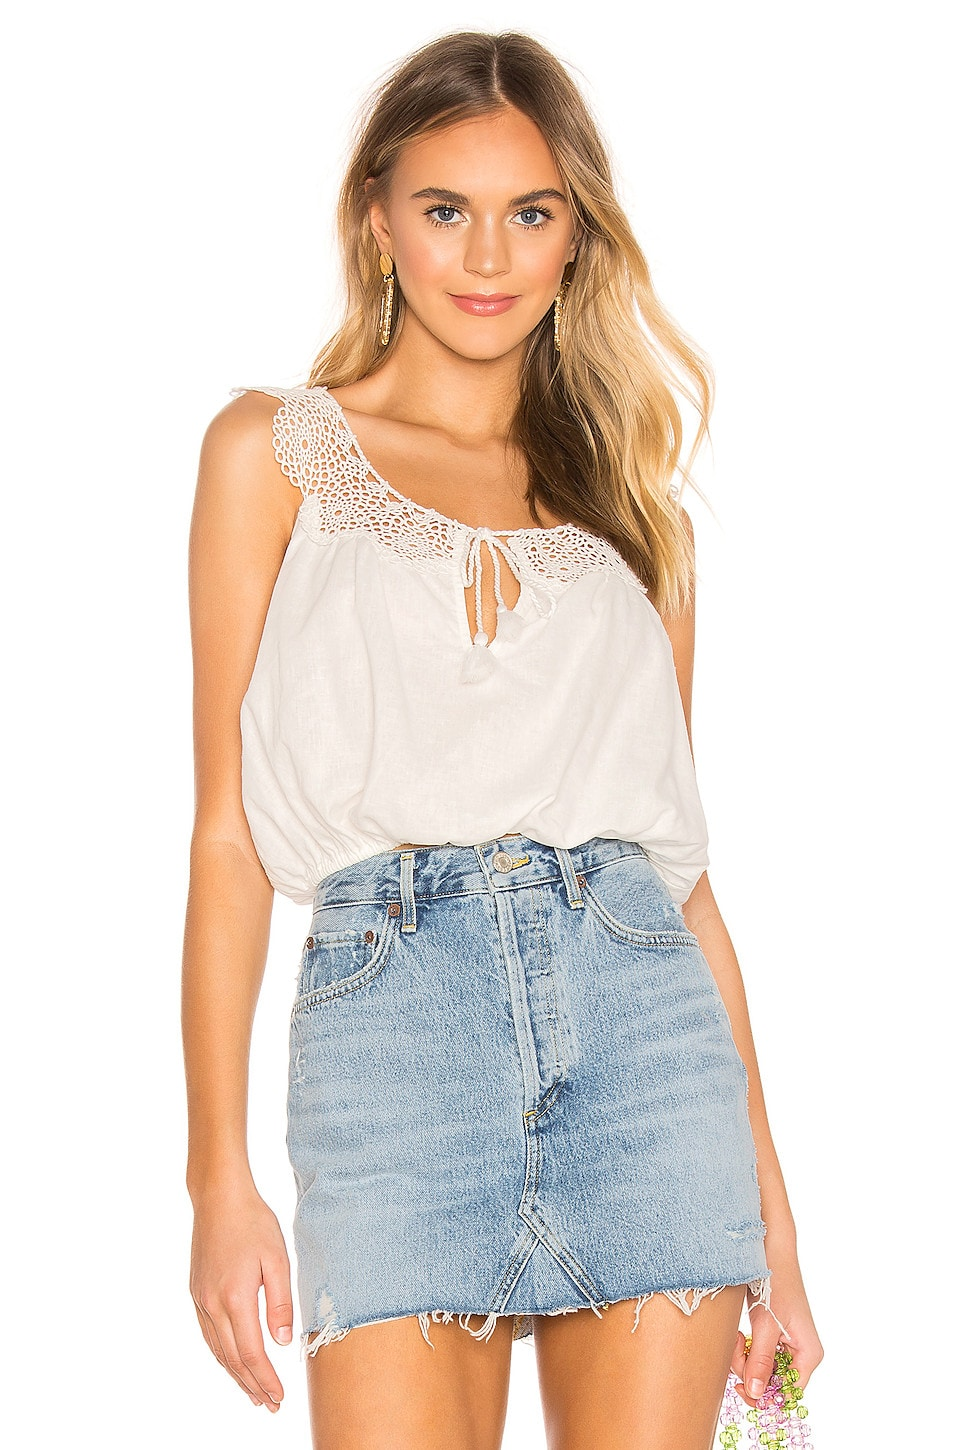 Free People Clover Croft Tank Top in White